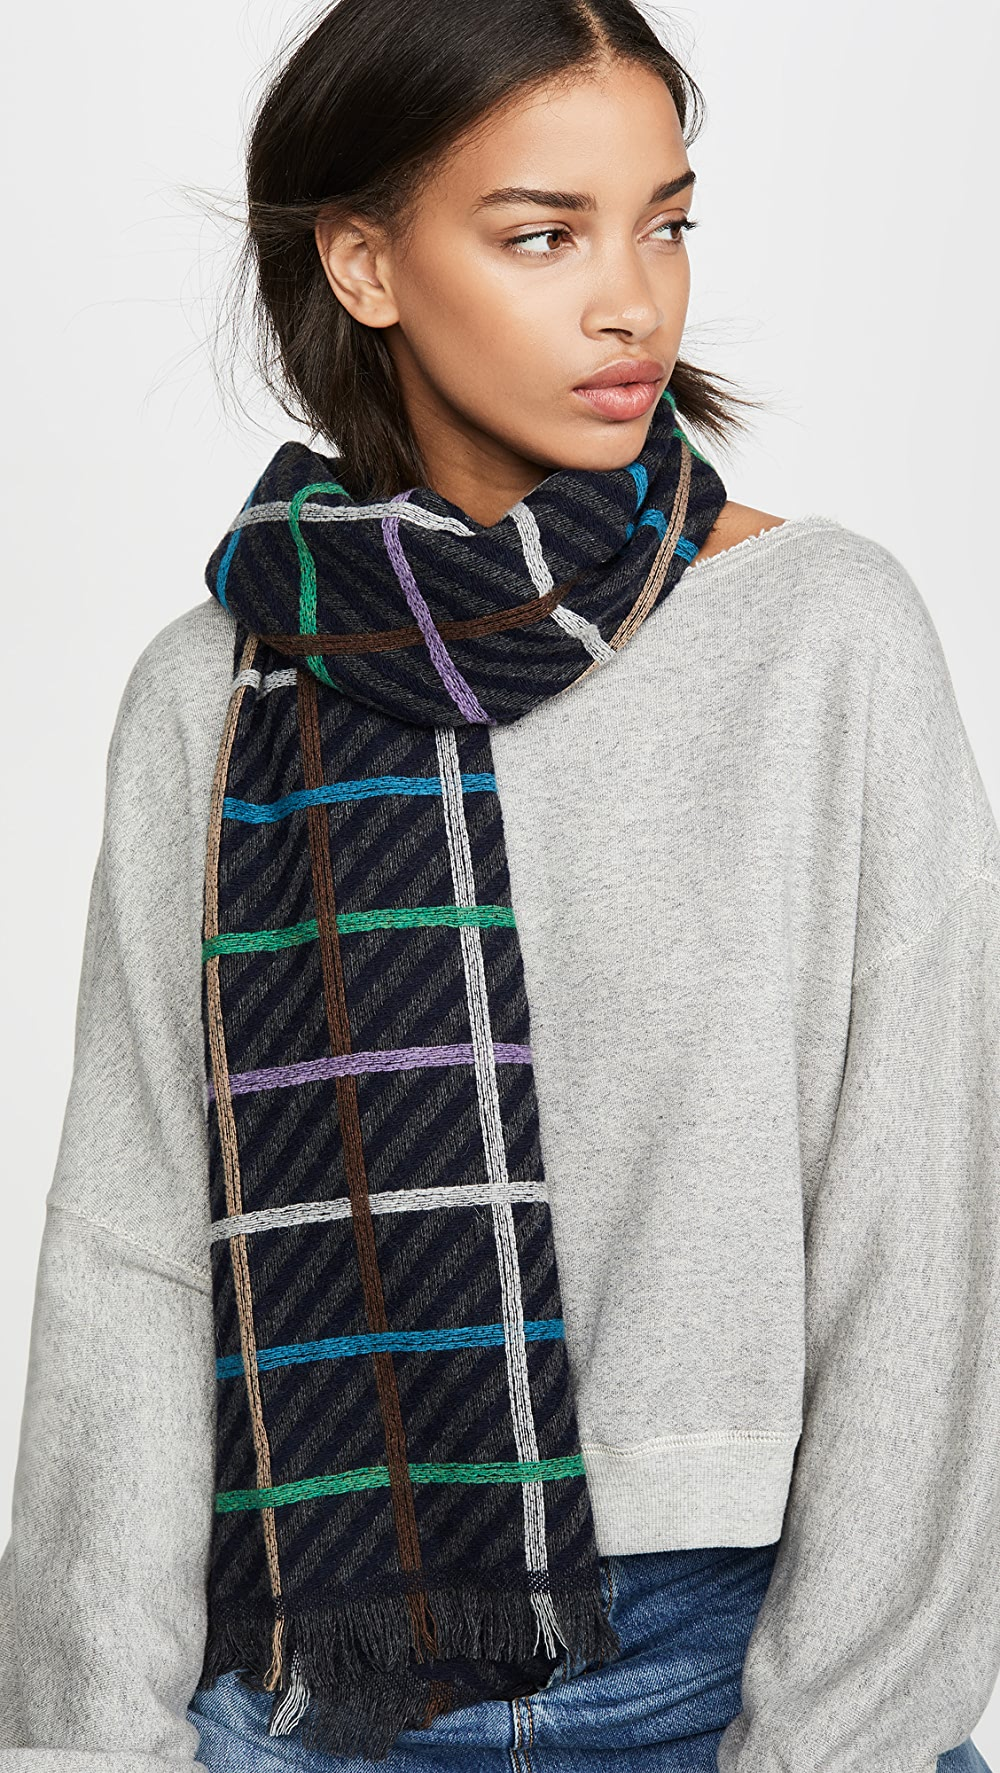 Practical Rachel Comey - Aba Scarf Limpid In Sight